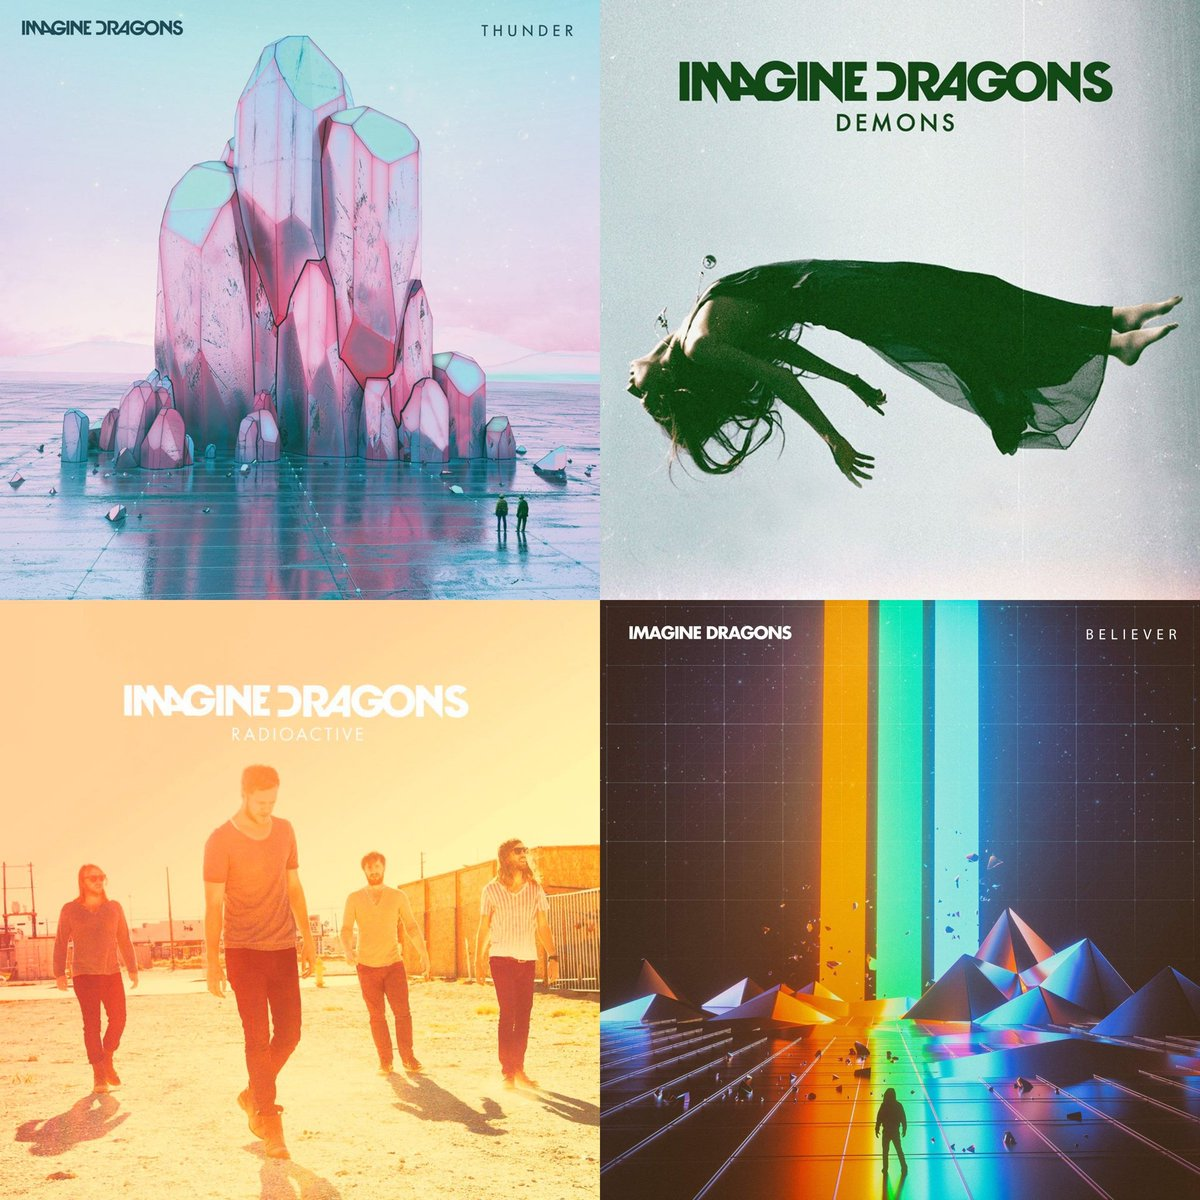 .@Imaginedragons becomes the first and only group to have 4 songs with over 900 MILLION streams on Spotify:  #1. Believer — 1.2B #2. Thunder — 1.1B #3. Radioactive — 955M #4. Demons — 900M <br>http://pic.twitter.com/xdXpmFAQ6n